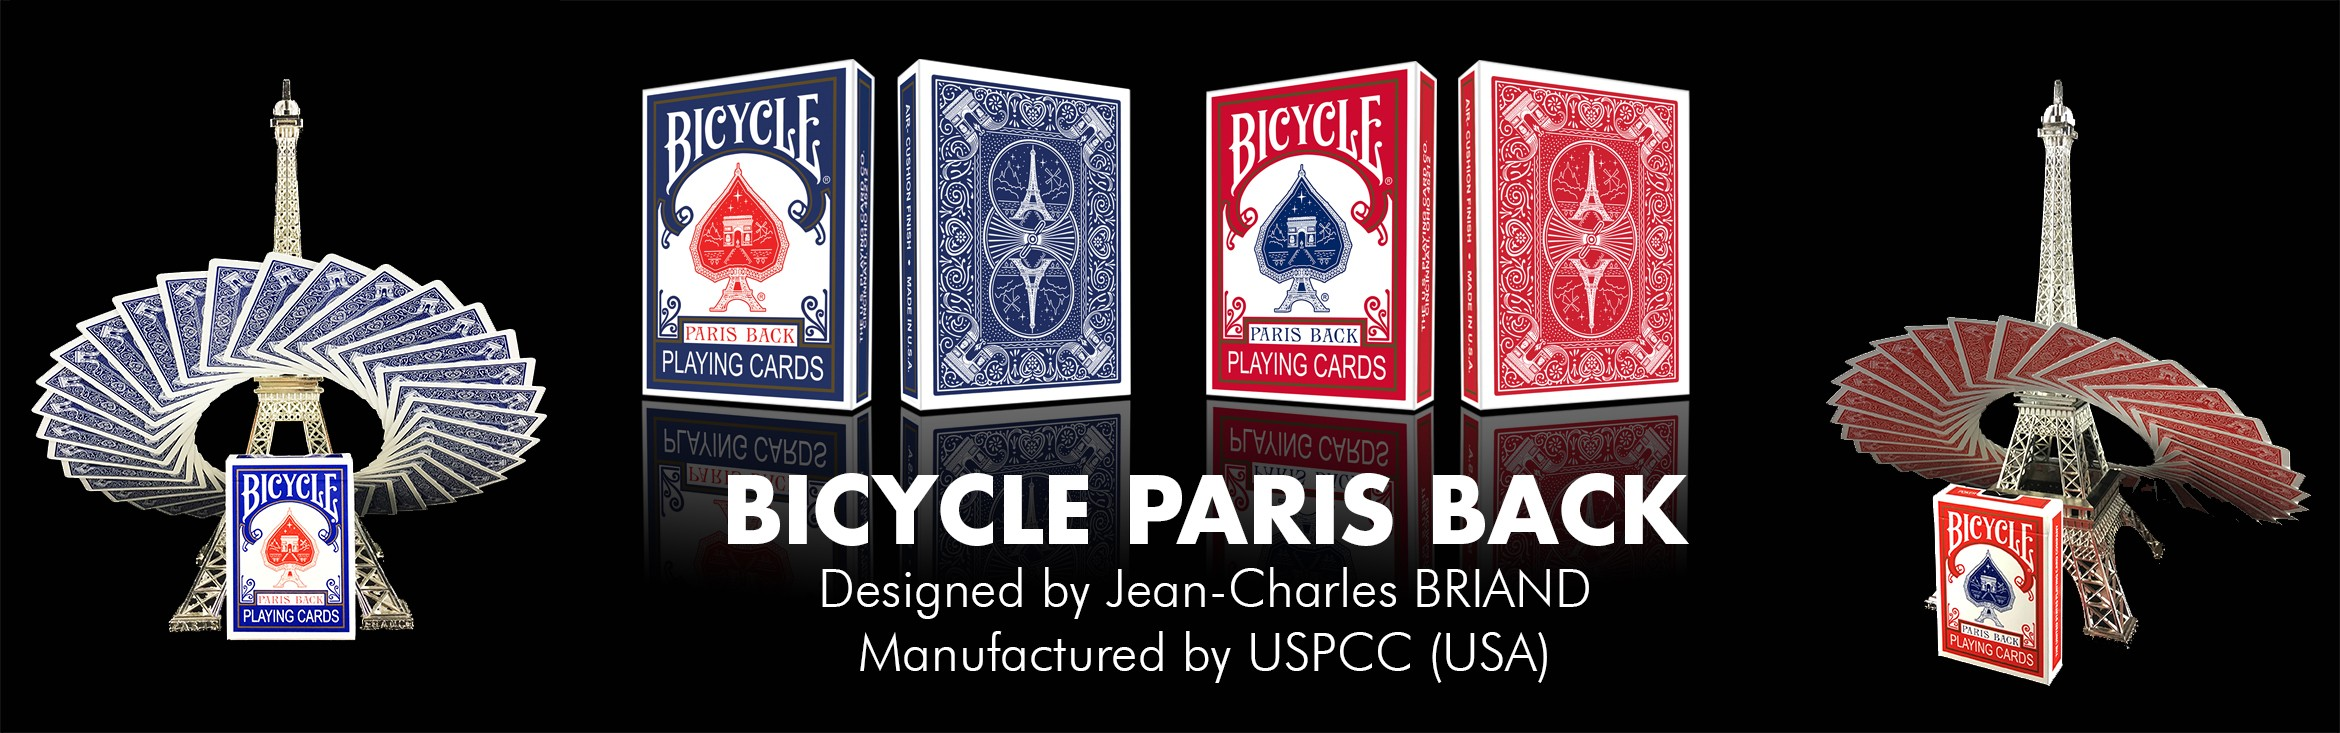 bicycle-cards-paris-back-magician-collection